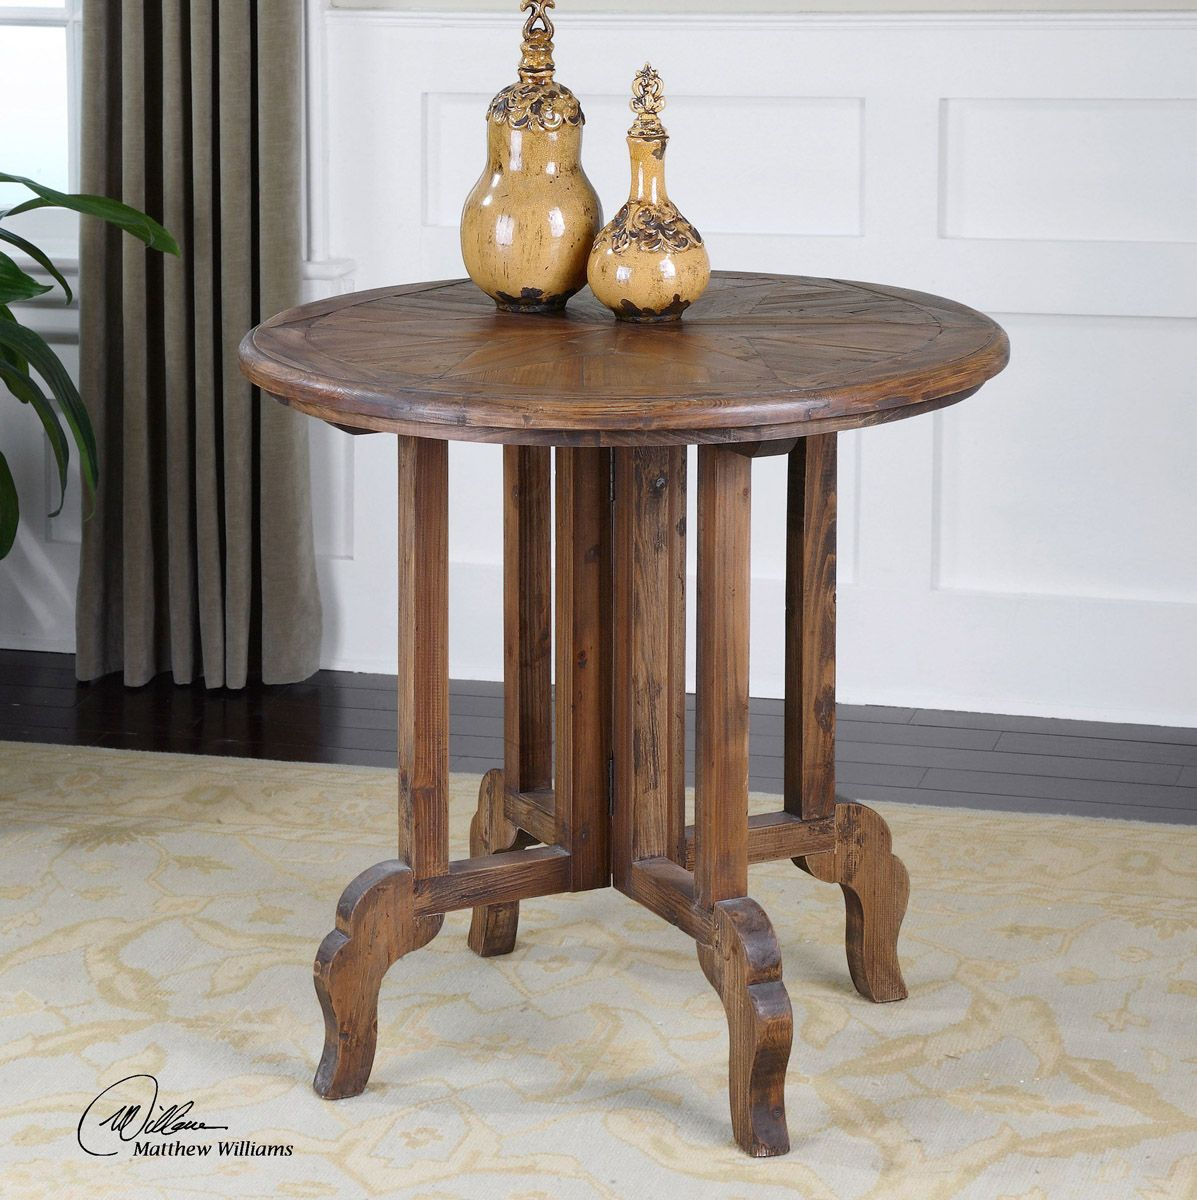 Six-Pointed Star Accent Table